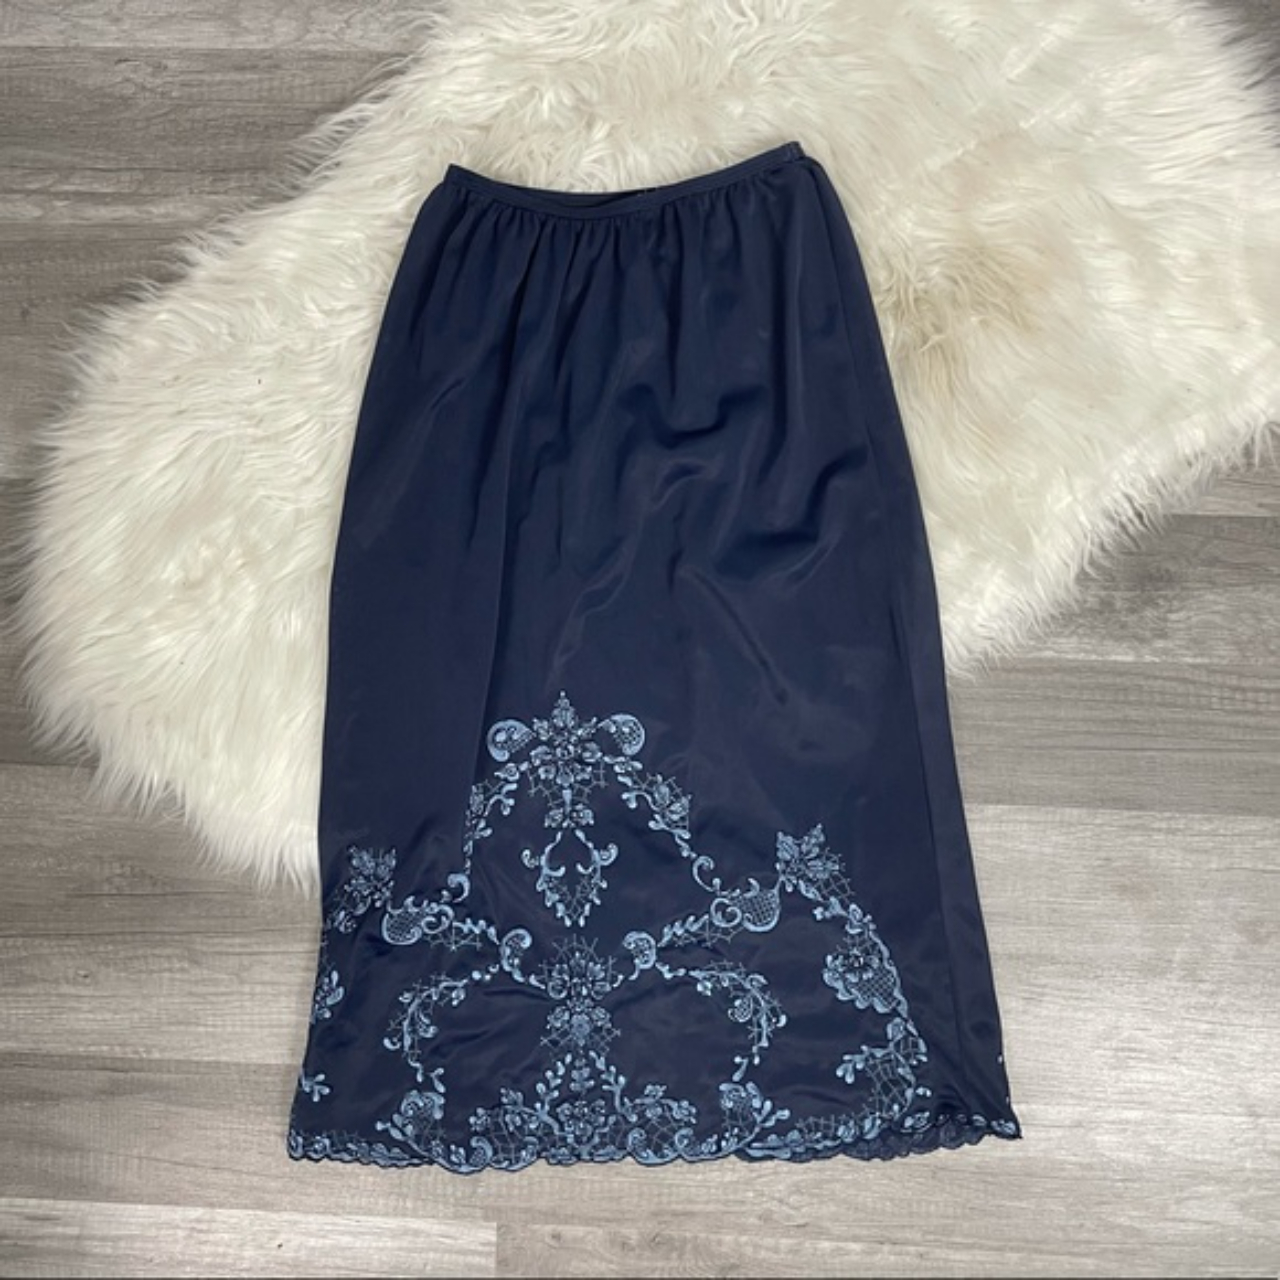 Product Image 1 - Vintage Blue Skirt Slip with